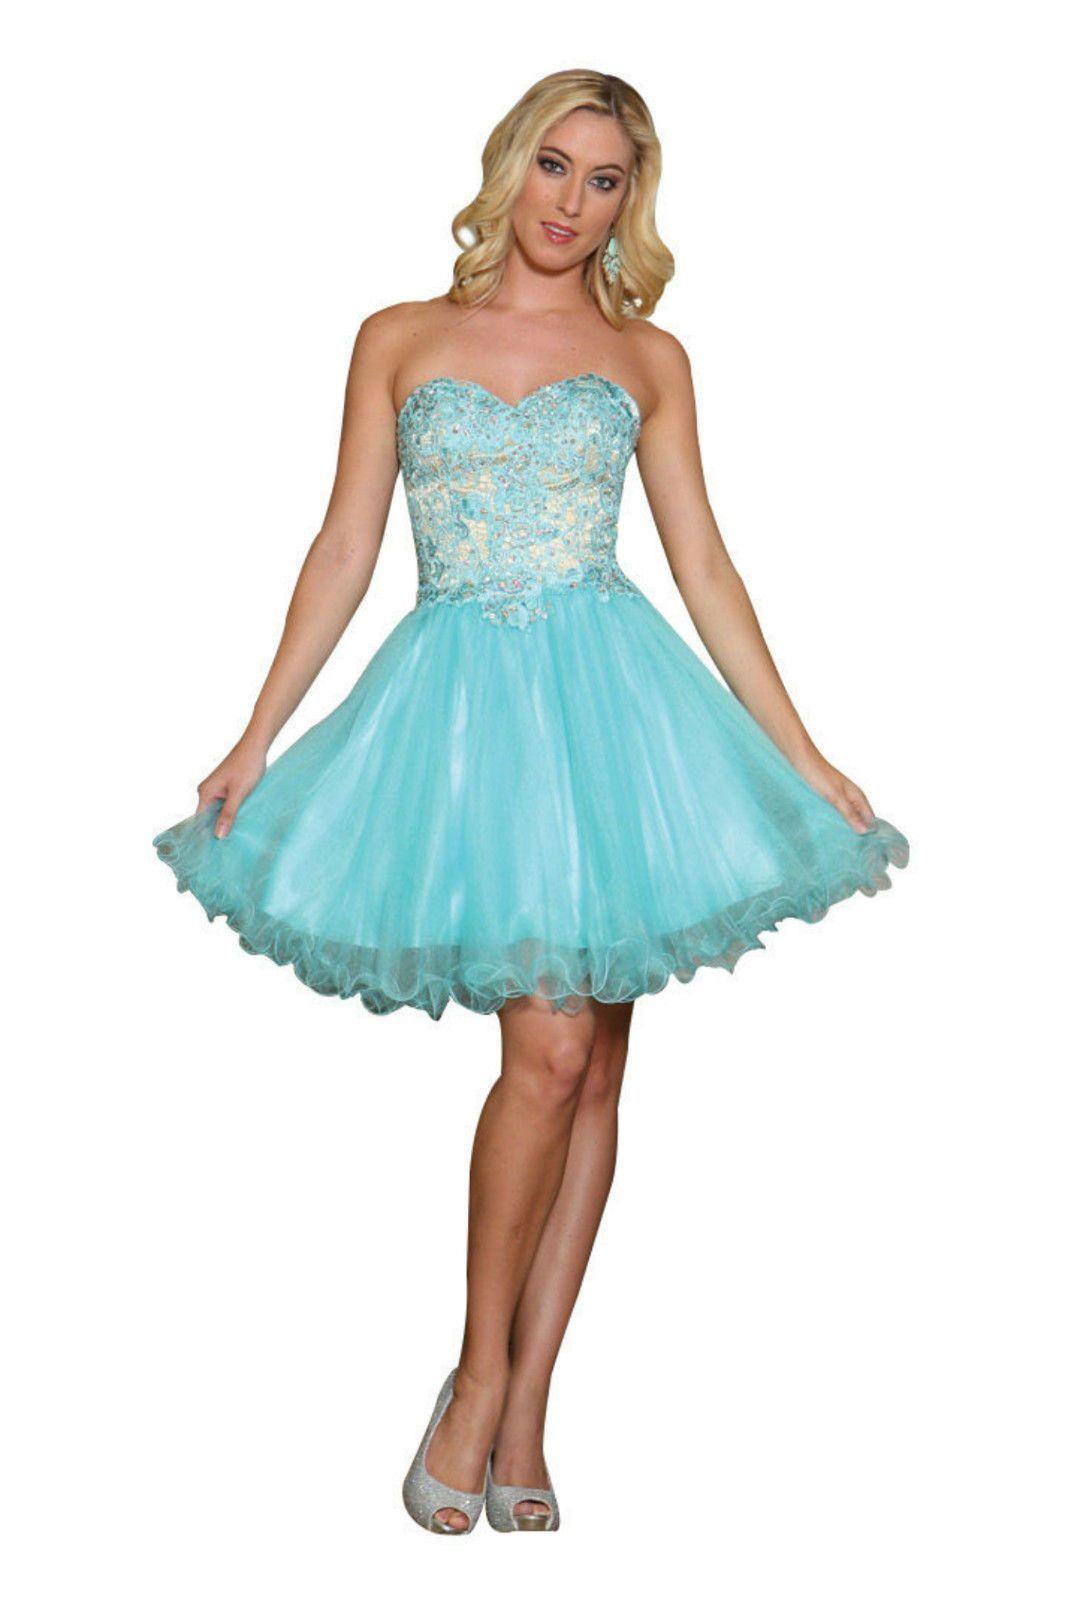 Prom Short Mini Dress | Lace applique, Sassy and Sequins